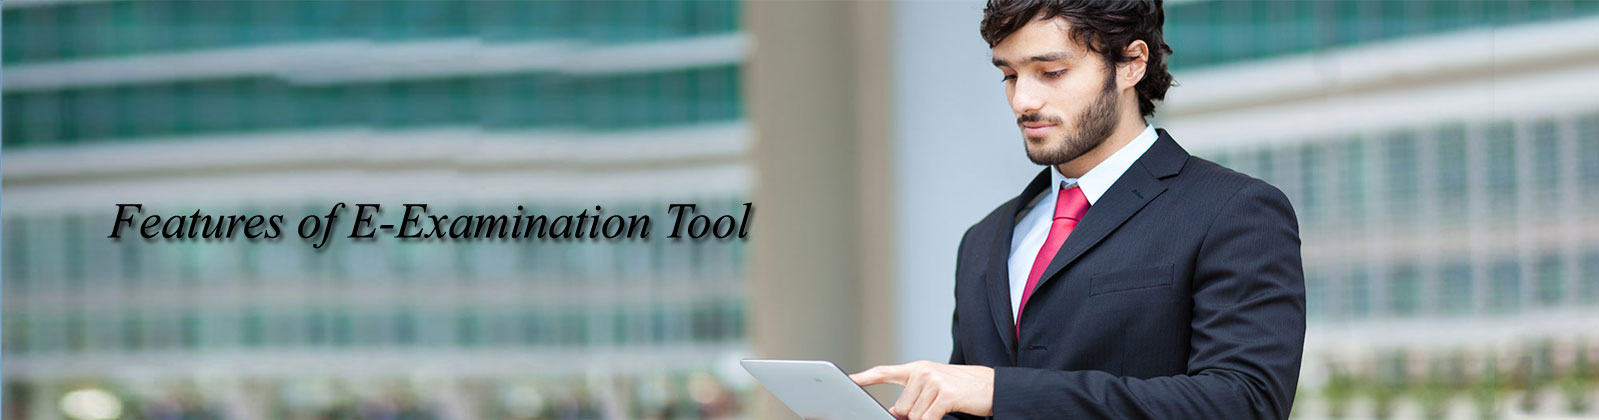 Features-of-E-Examination-Tool